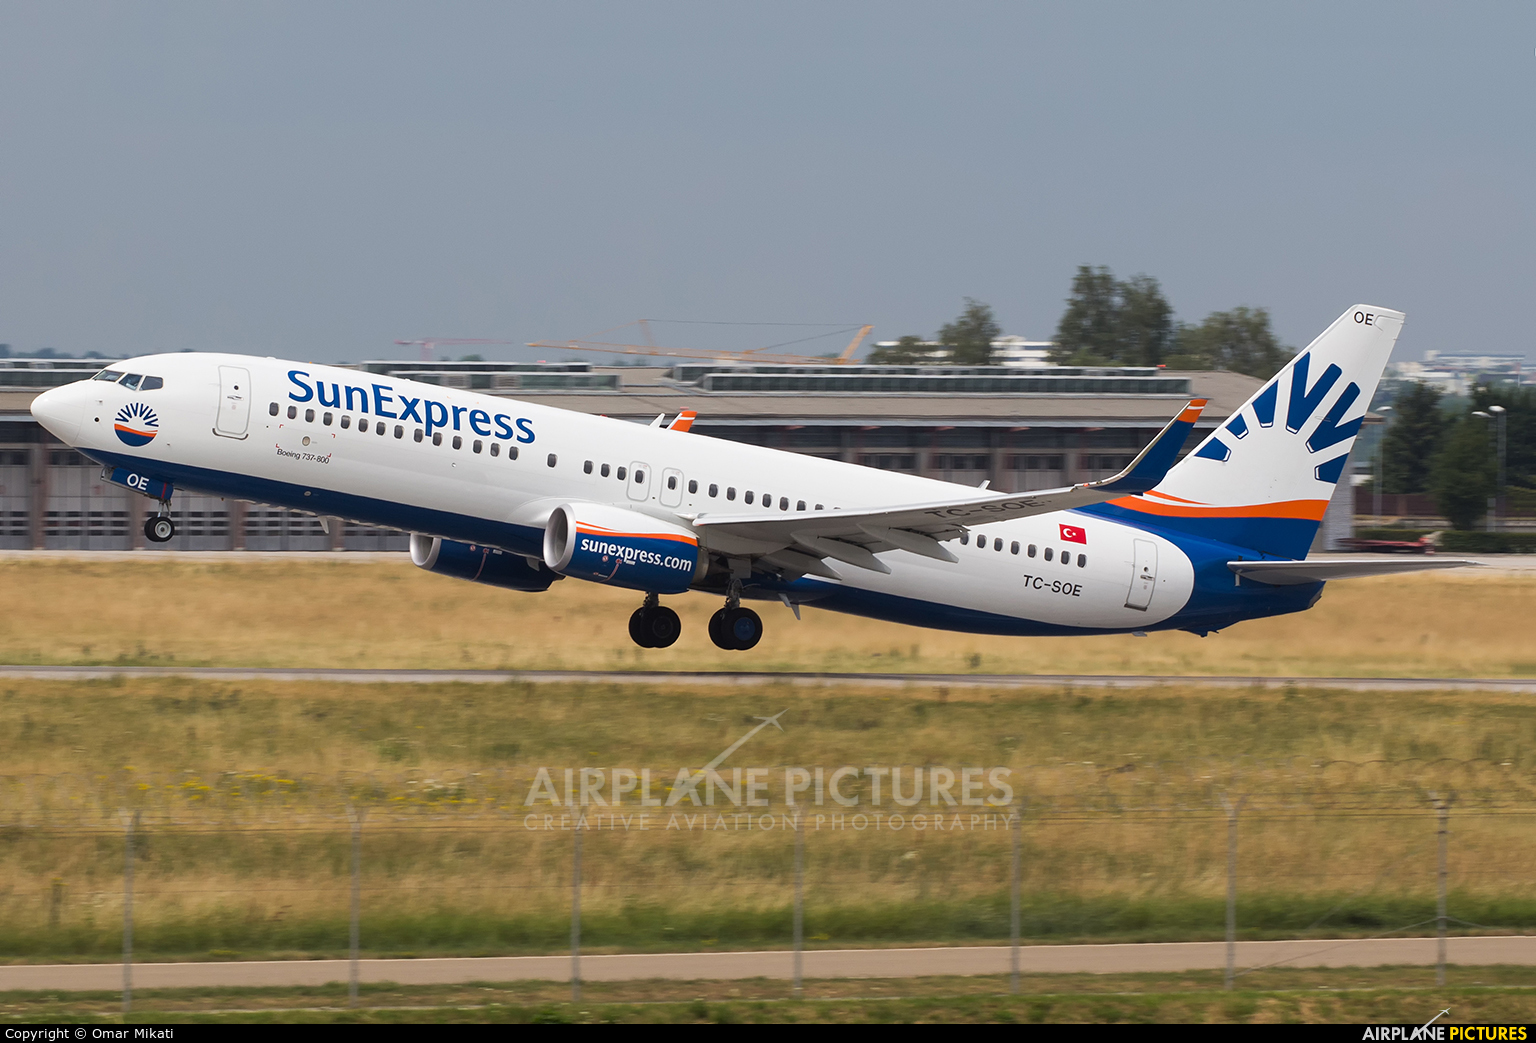 SunExpress TC-SOE aircraft at Stuttgart